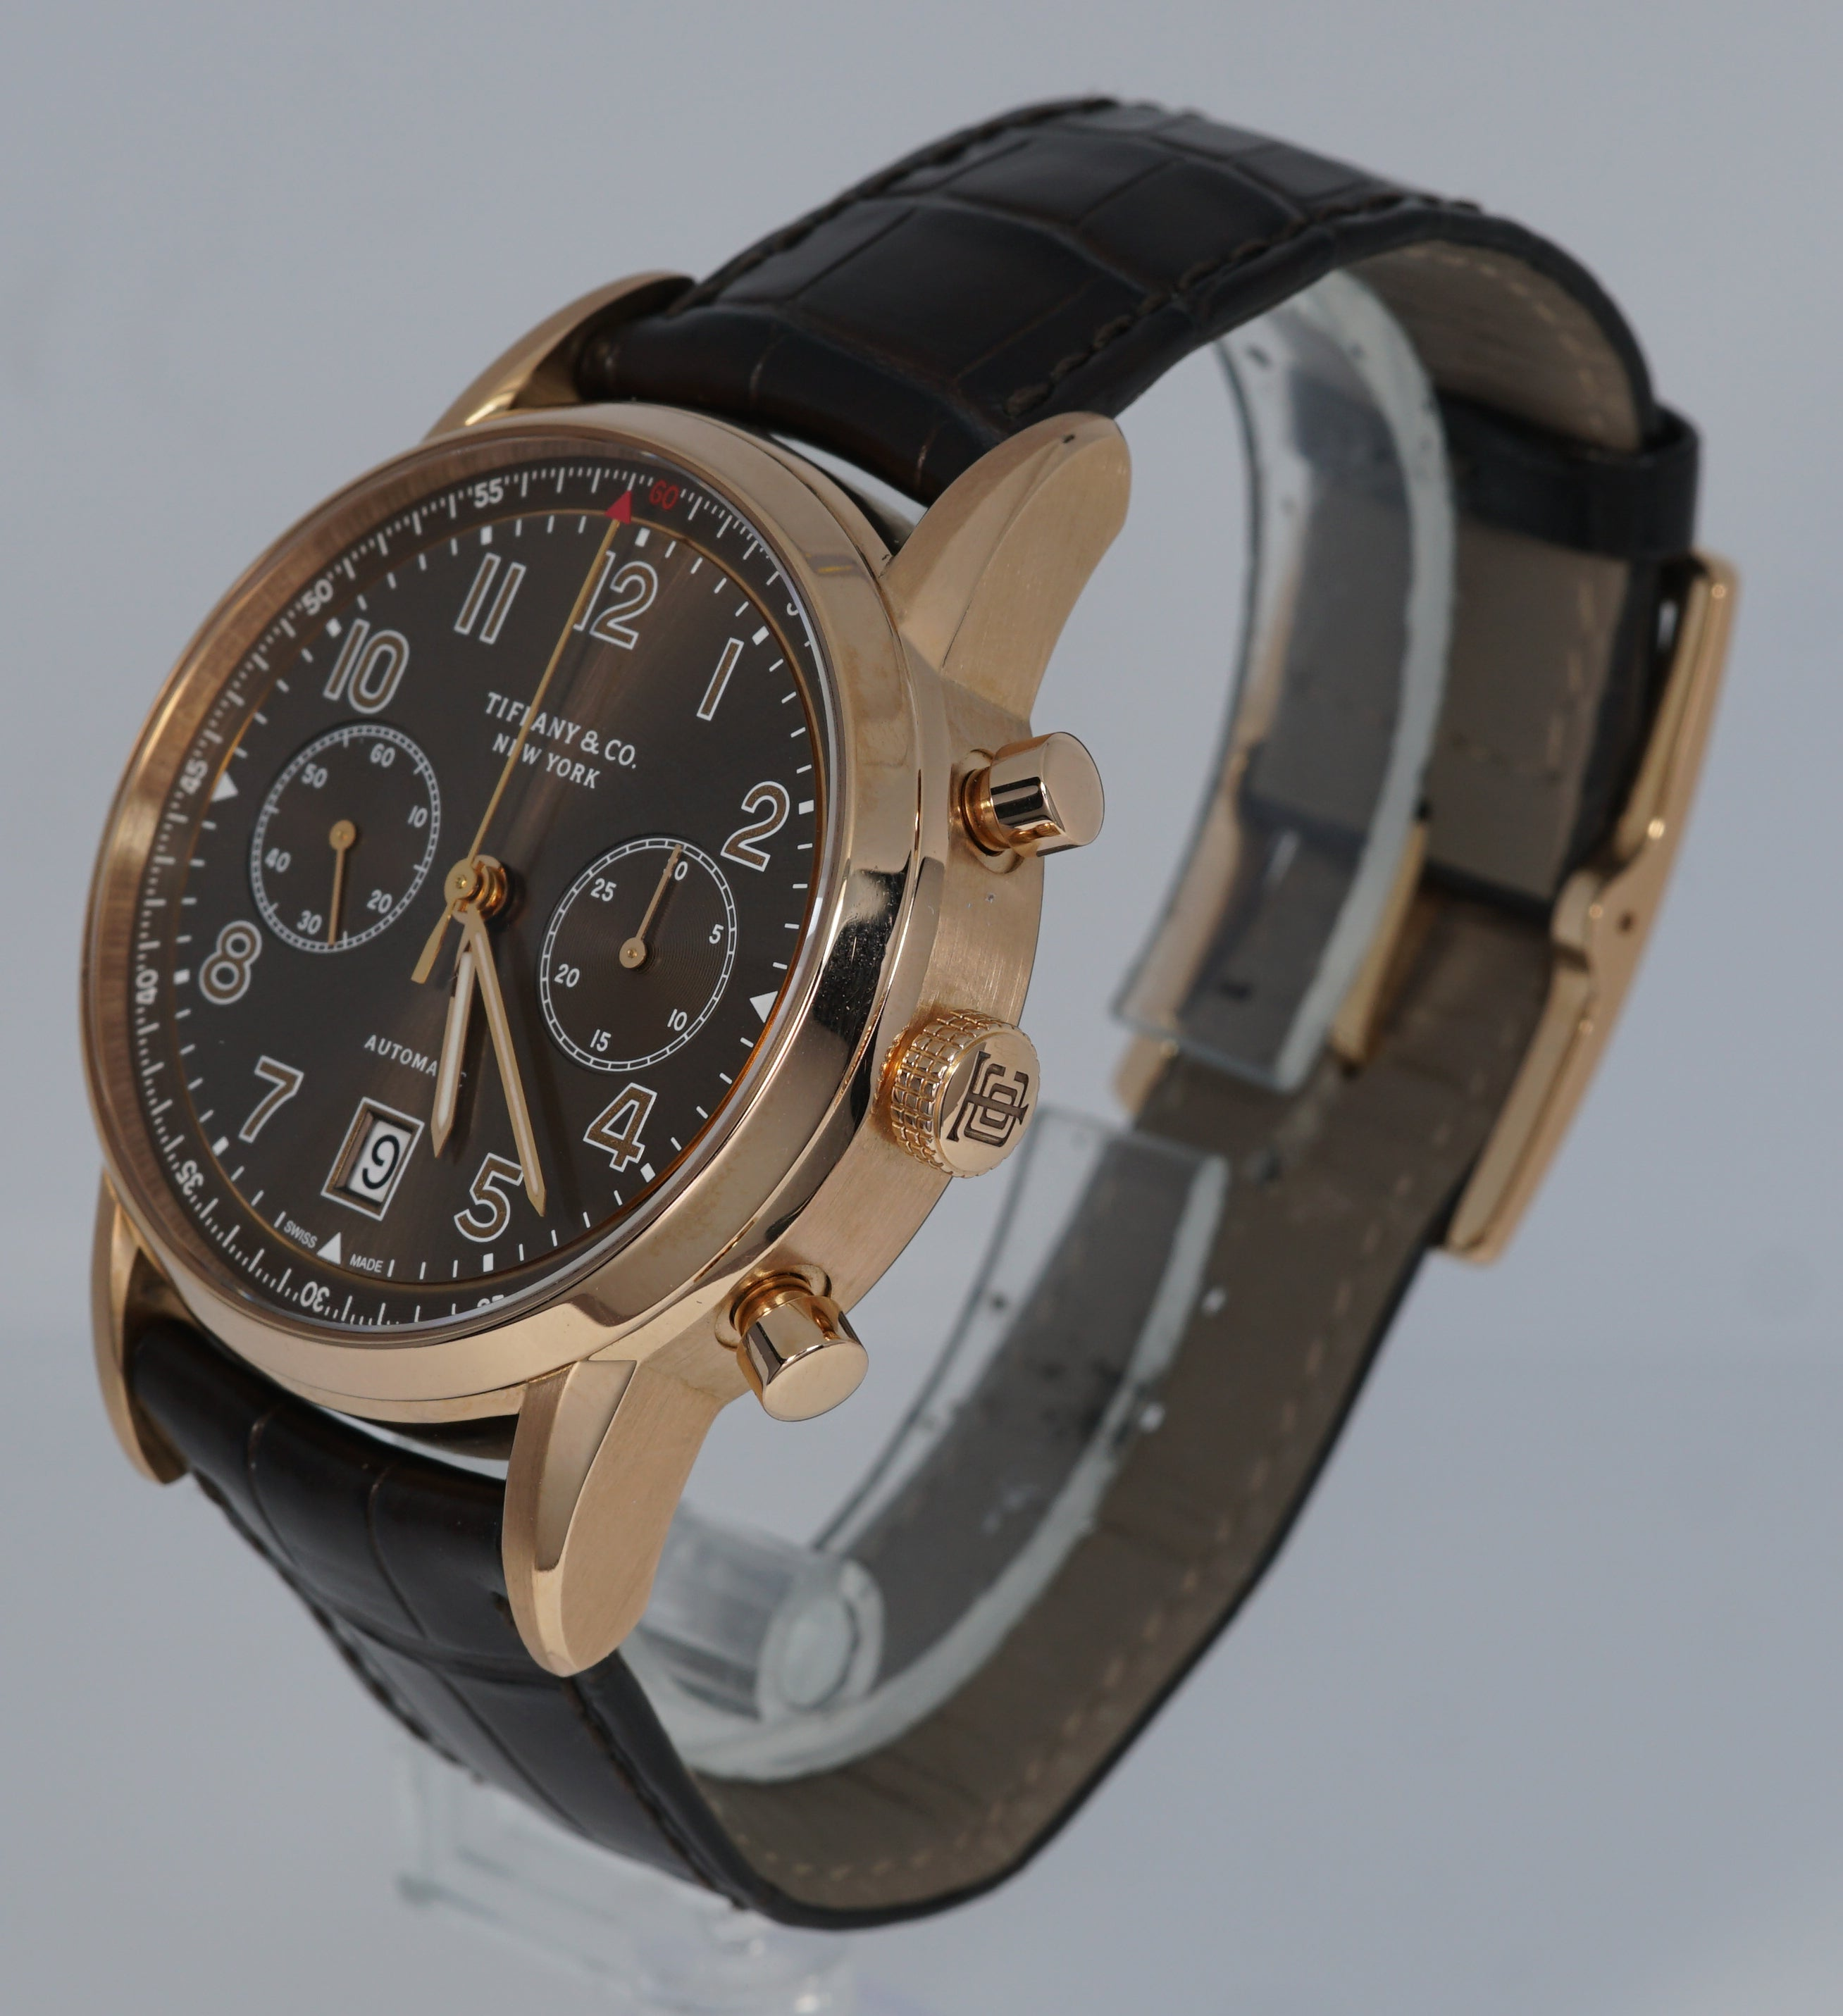 Tiffany & Co. CT60 Chronograph 42mm 18K Rose Red Gold Brown Leather Date Watch